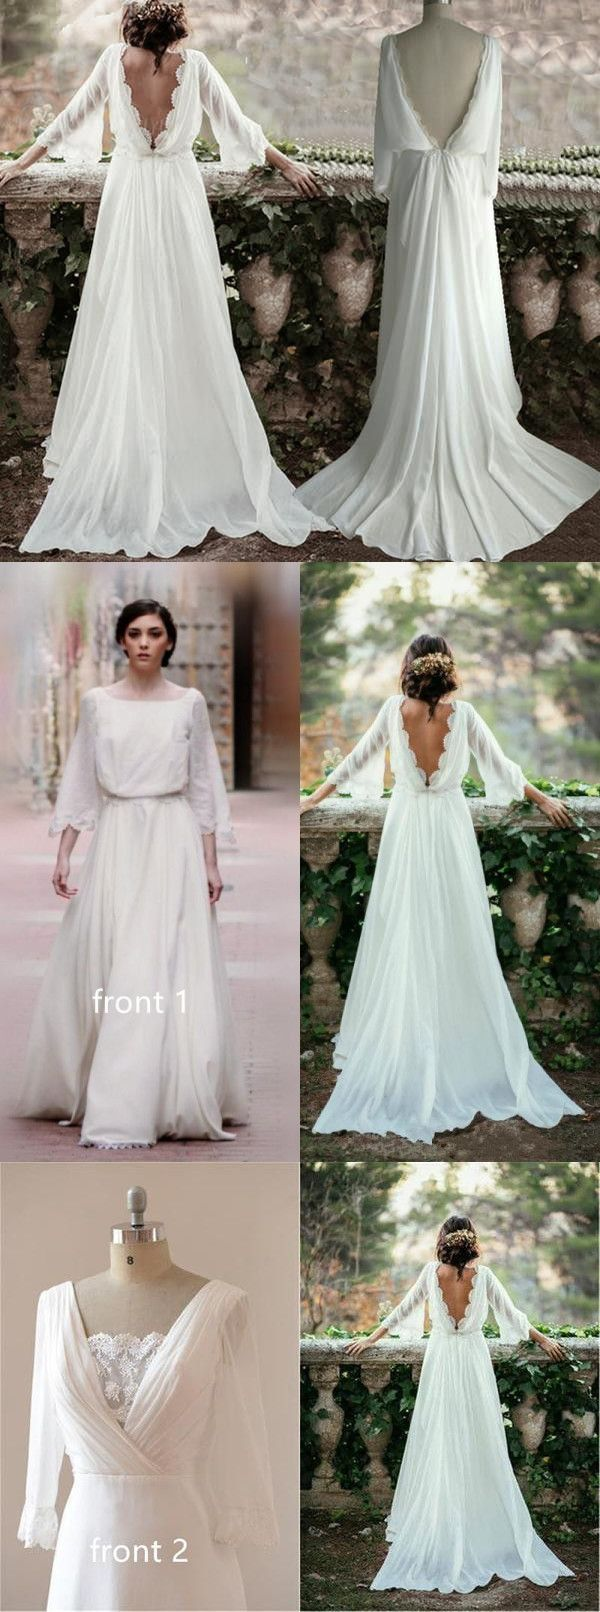 Vintage wedding dresses with sleeves  Lace Backless Wedding DressVintage Wedding DressLong Sleeve Bridal